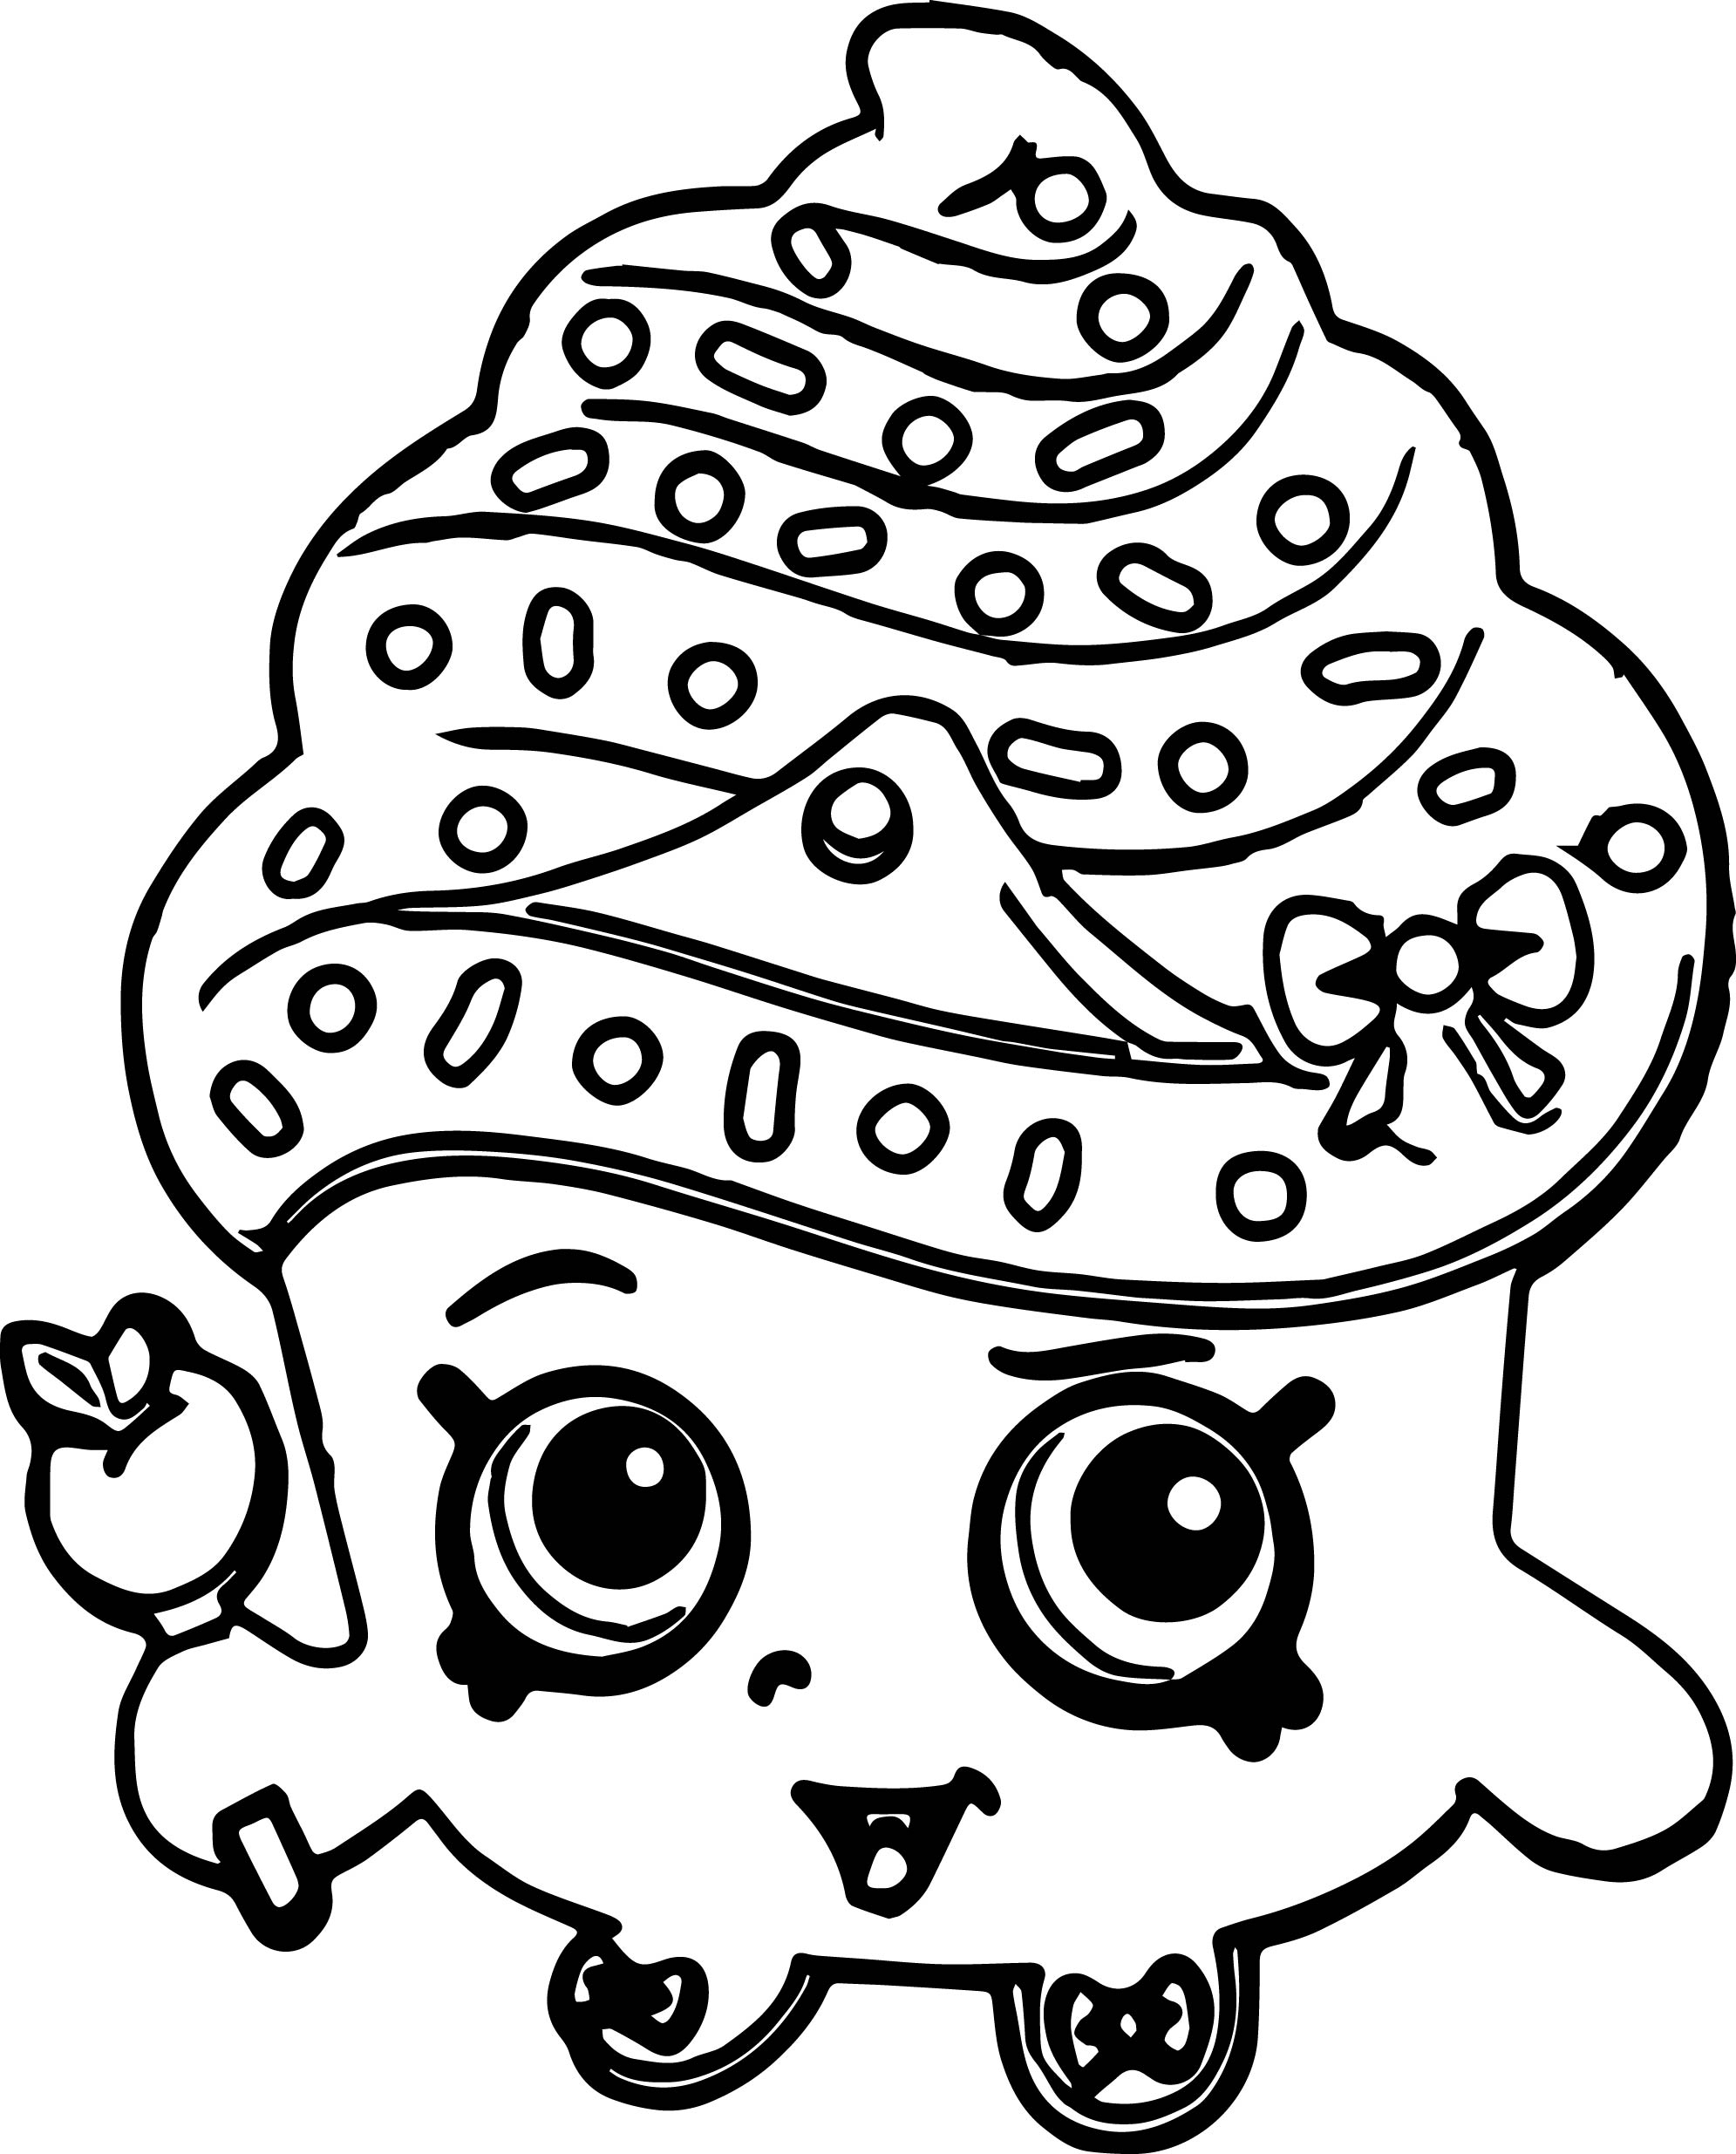 shopkins cupcake coloring pages petkins cupcake shopkins season 5 coloring pages printable pages shopkins cupcake coloring